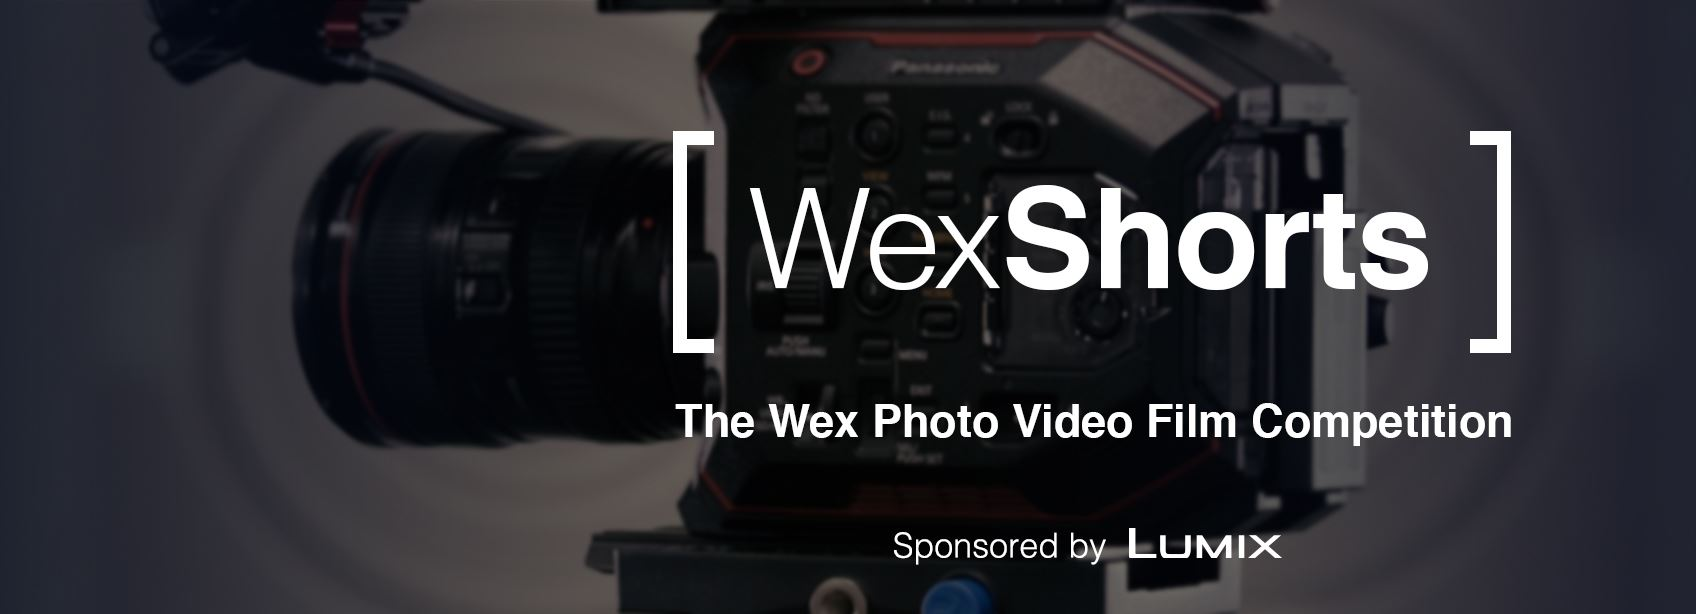 Together with our sponsor Panasonic LUMIX, we're very excited to announce the first WexShorts competition of 2019 - Enter now for your chance to win £1K in vouchers!